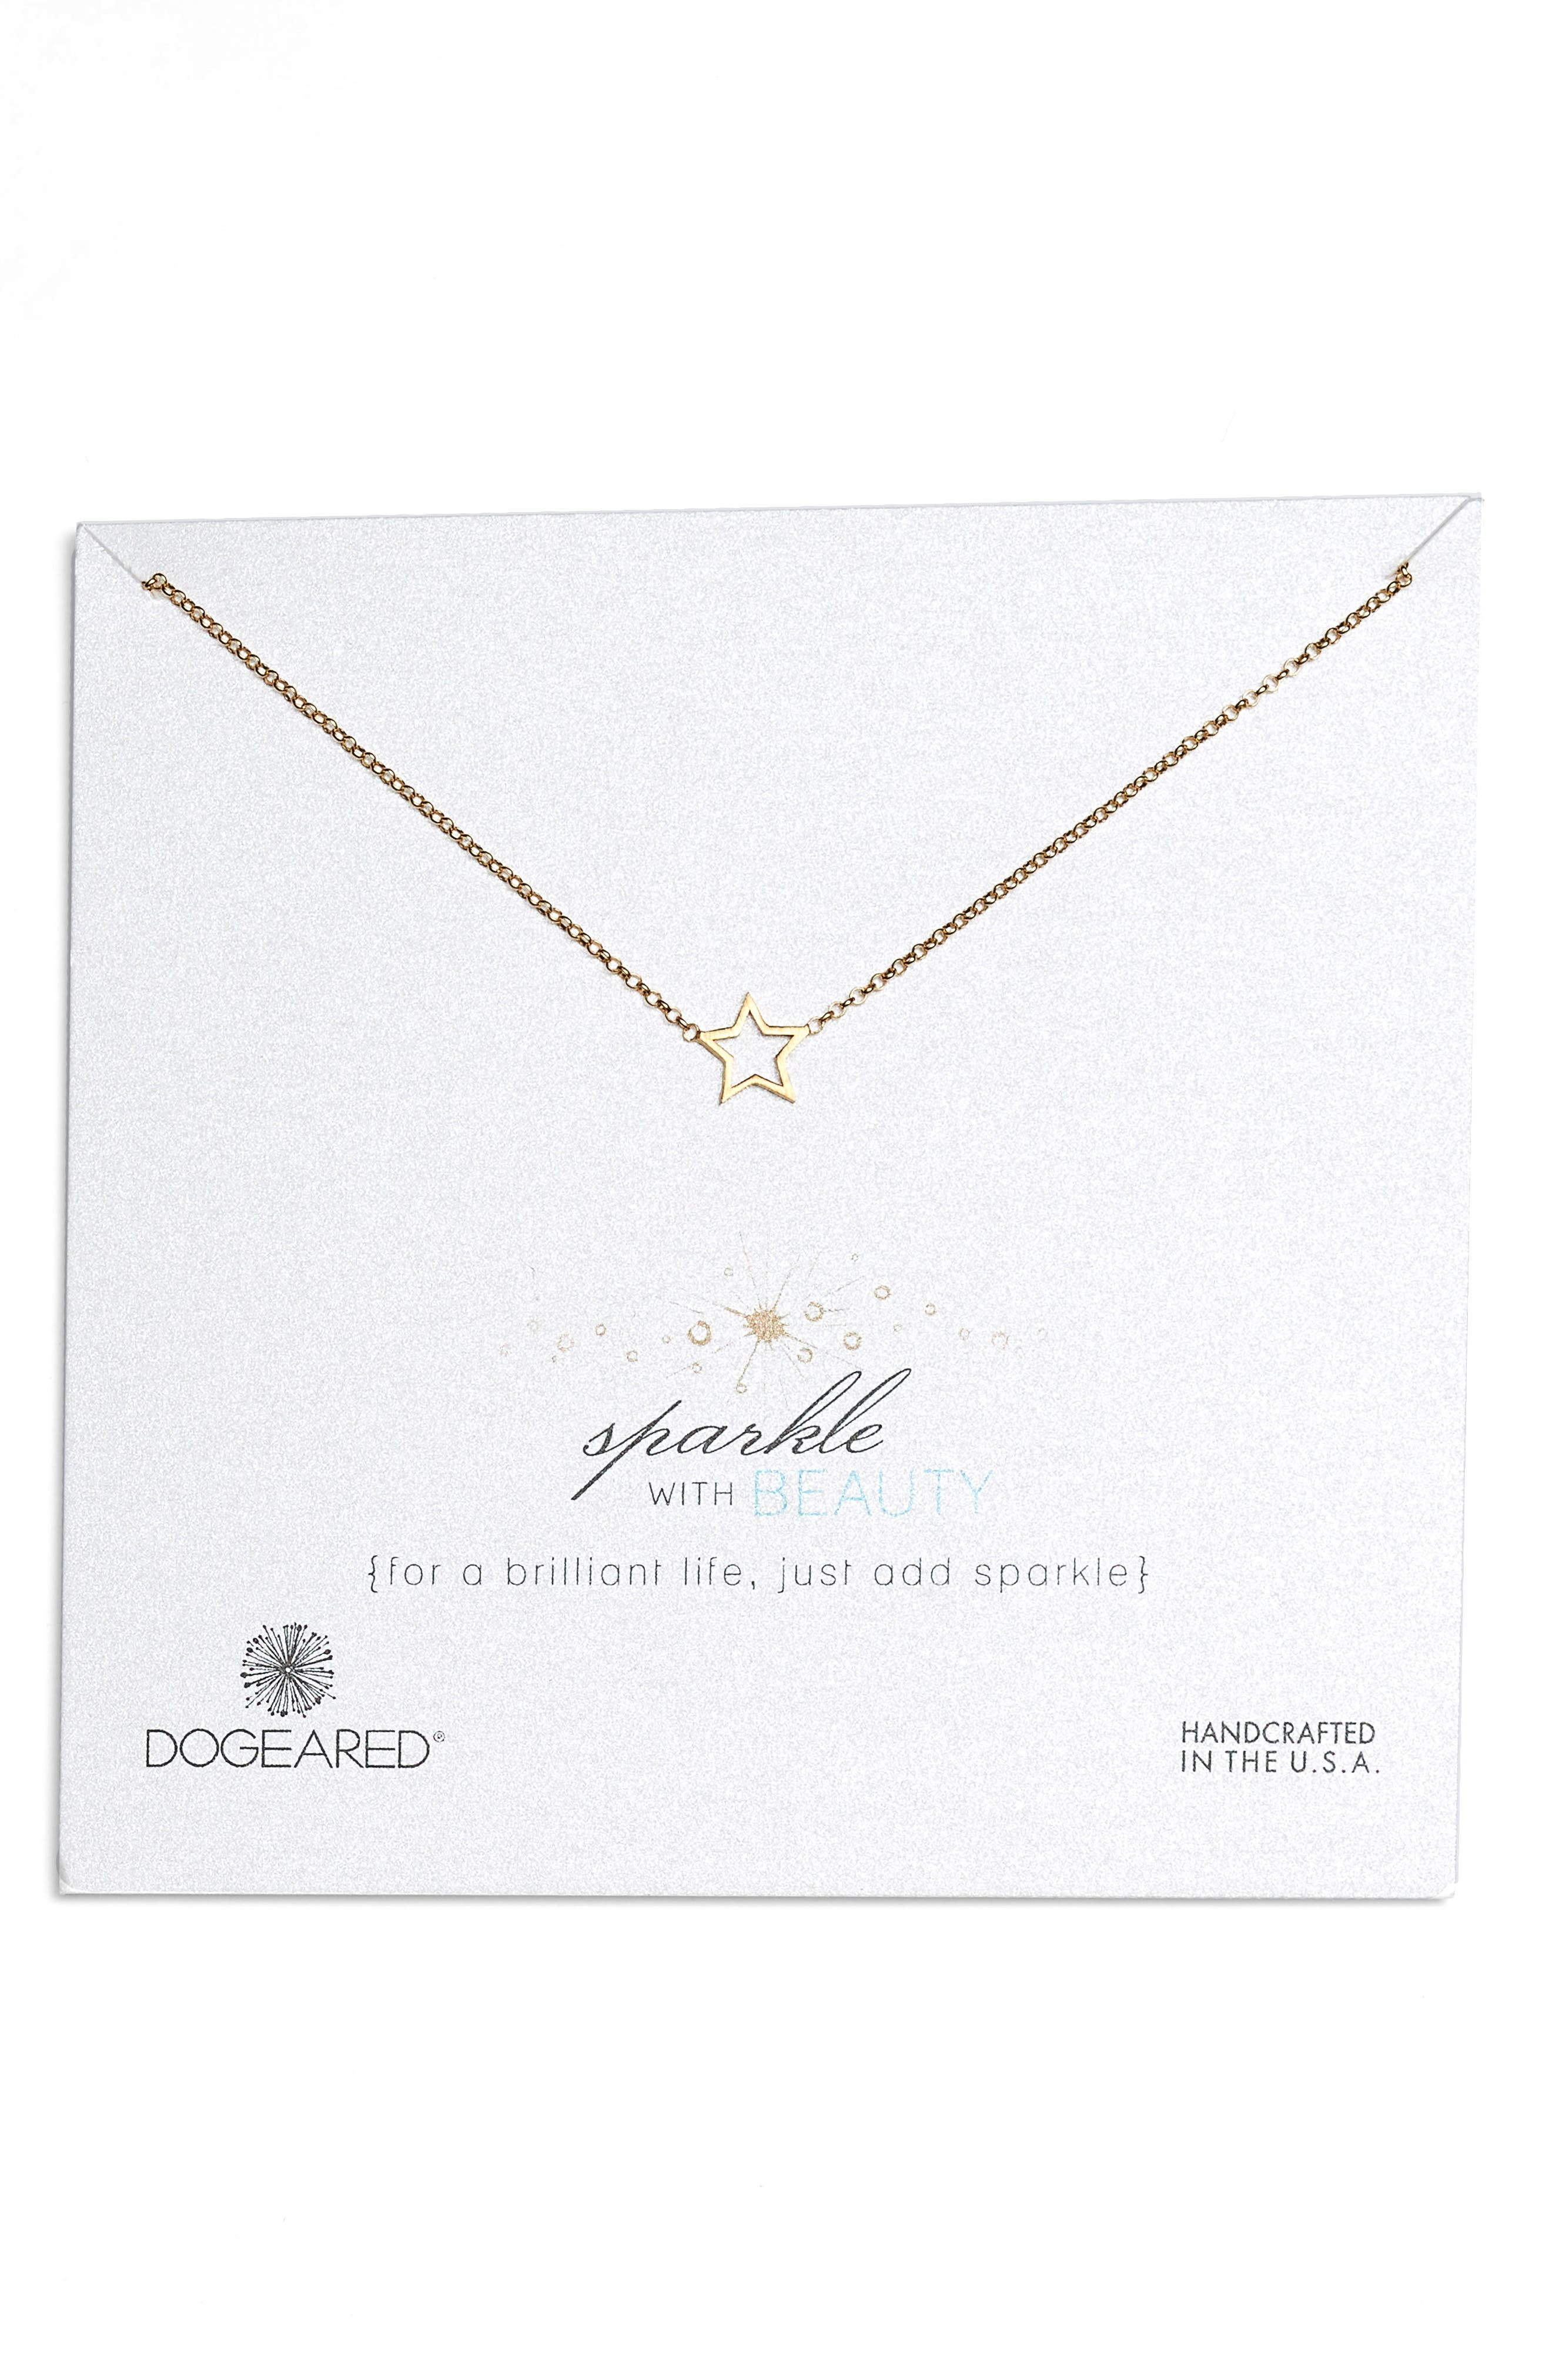 Sparkle with Beauty Necklace,                             Main thumbnail 1, color,                             Gold